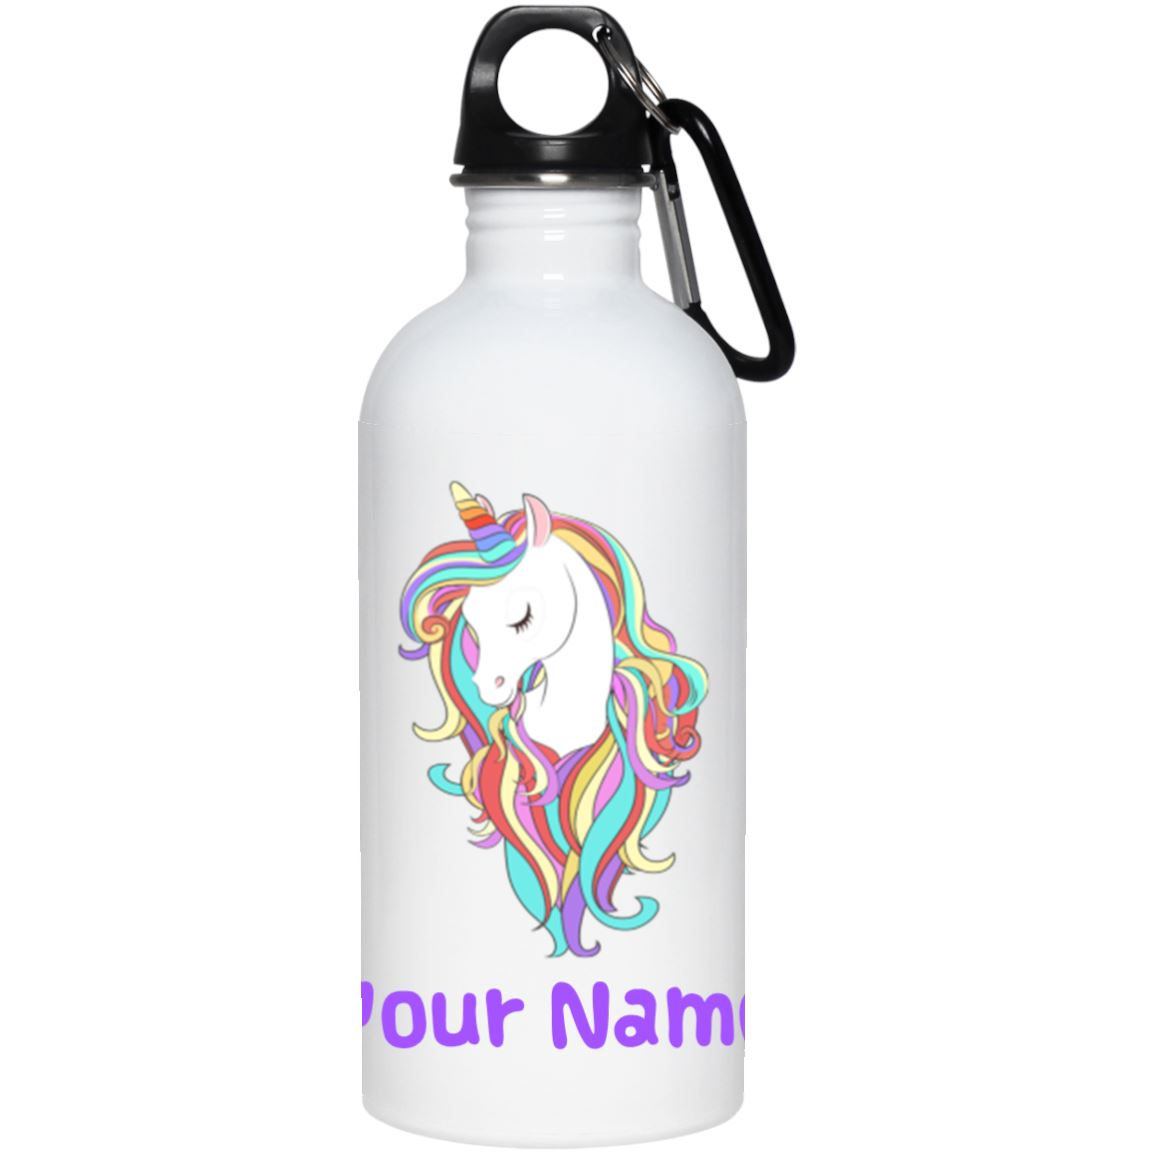 Personalized Magical Unicorn Stainless Steel Water Bottle Drinkware One Size